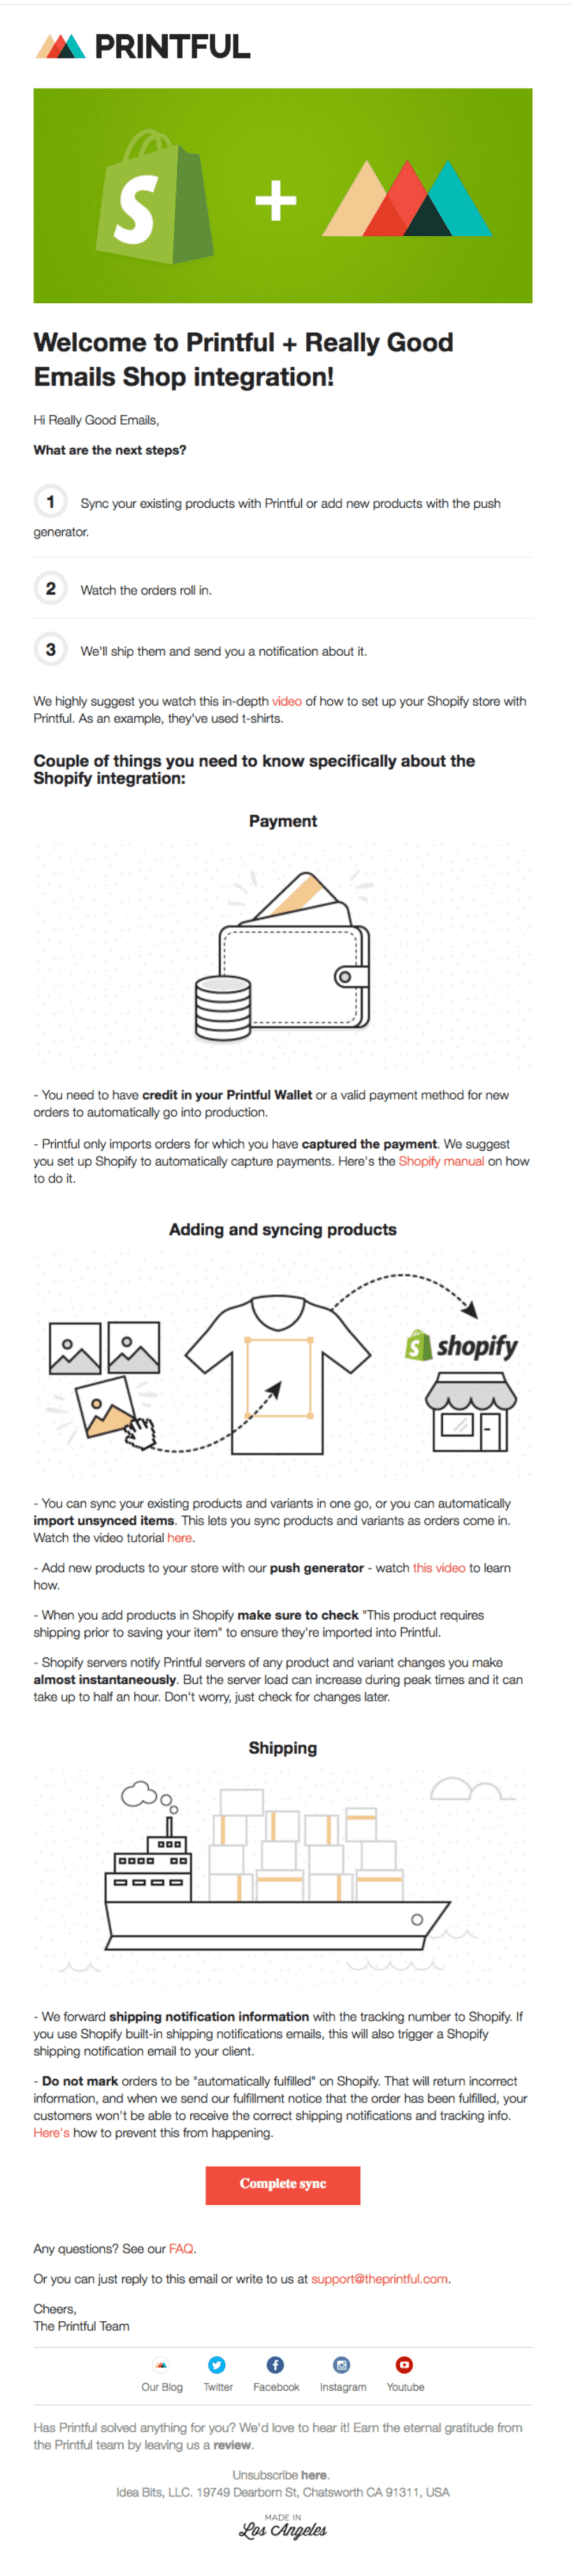 Onboarding example from Printful